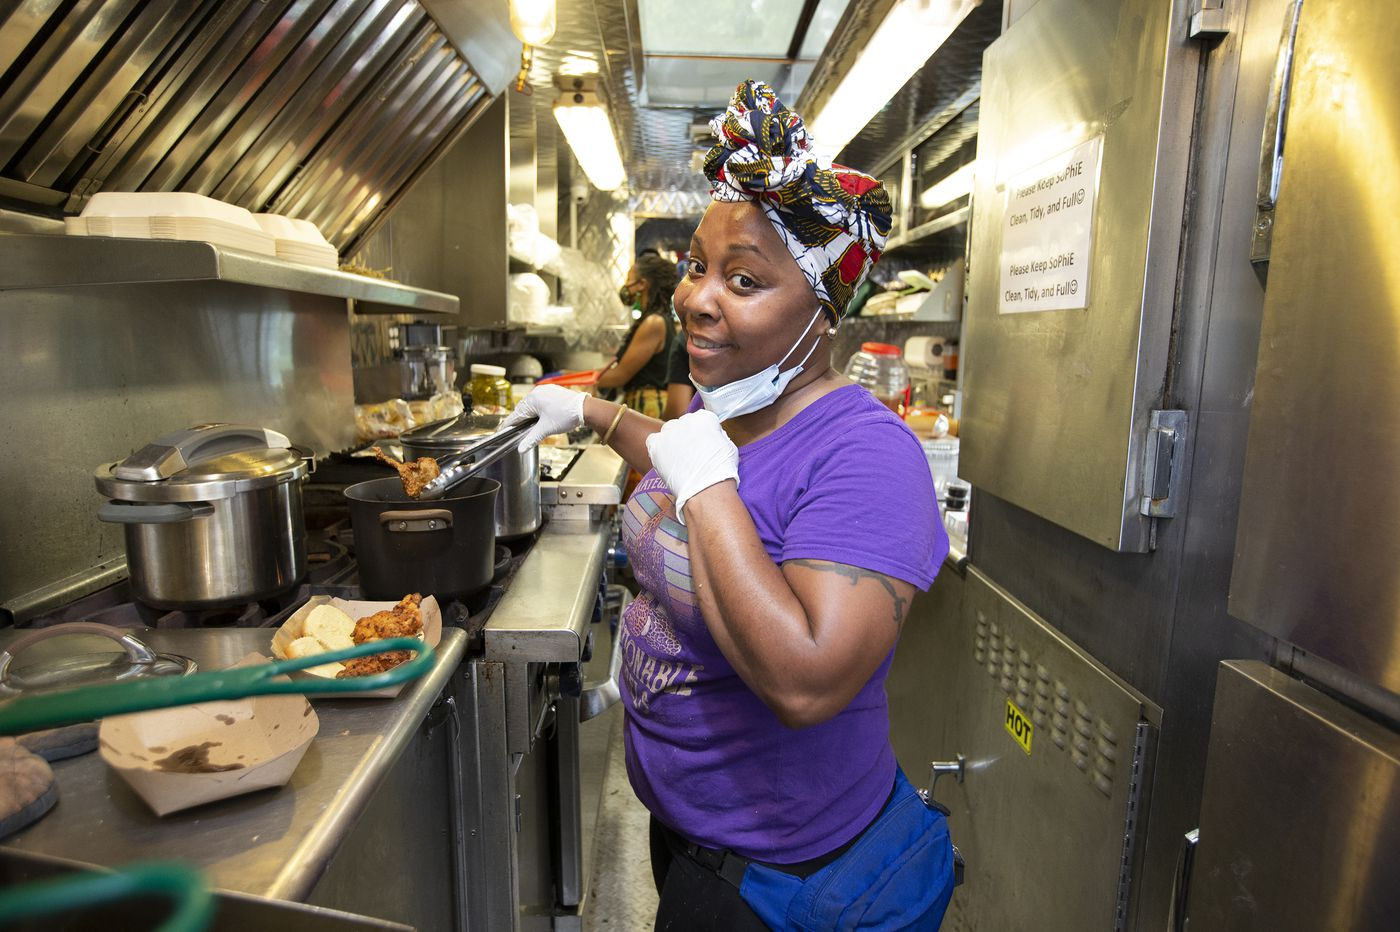 Chef Nia Minard is bringing Mississippi hot tamales to a South Philly food truck